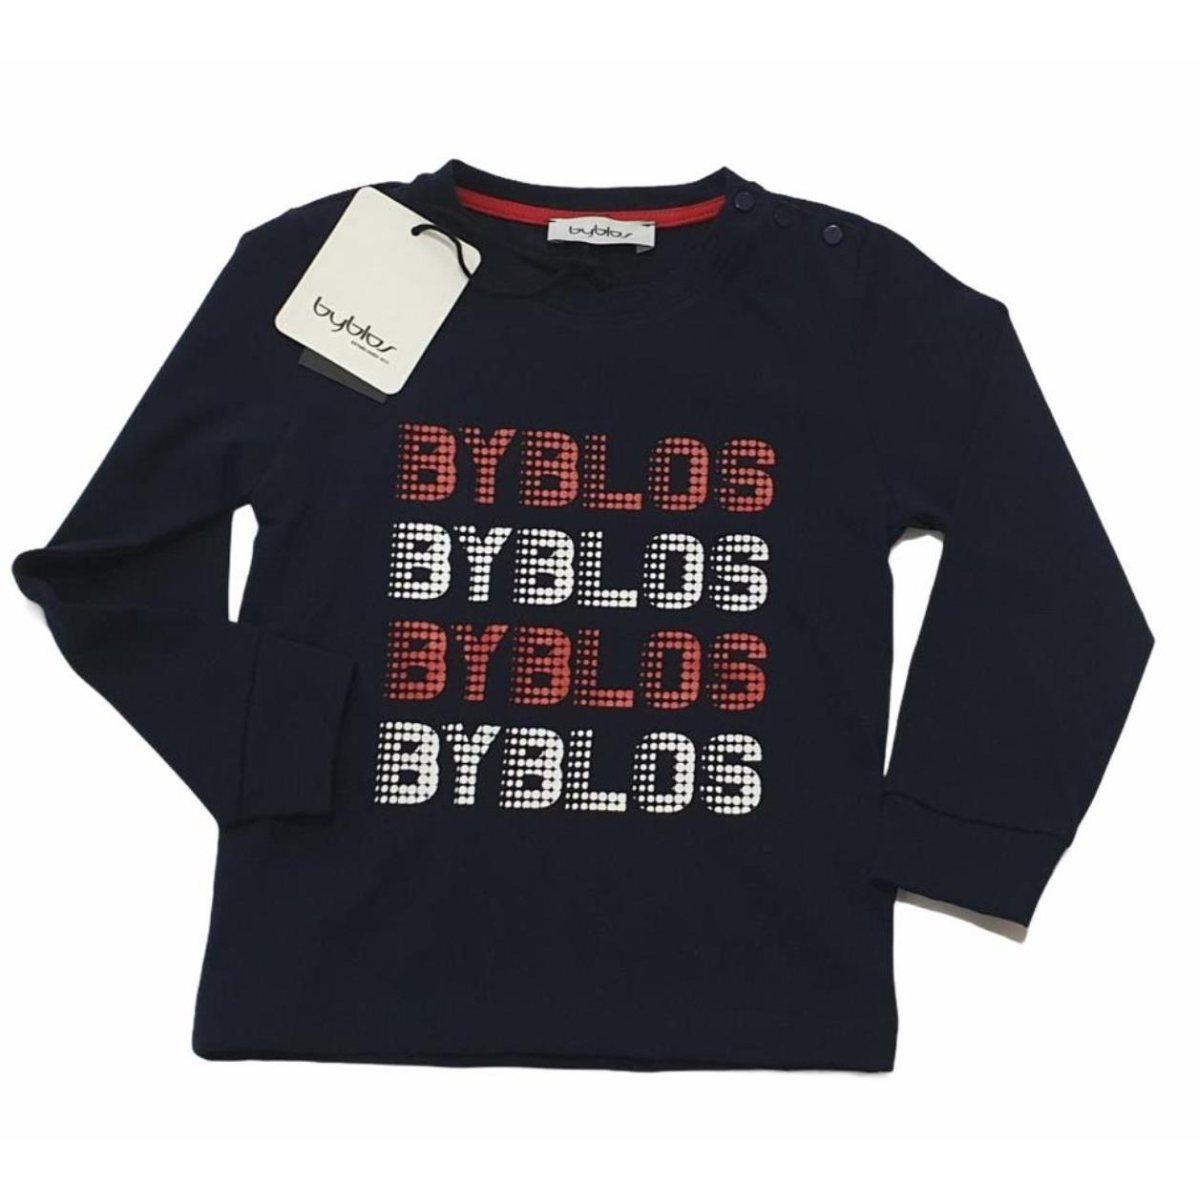 T-shirt ml baby byblos bu4973